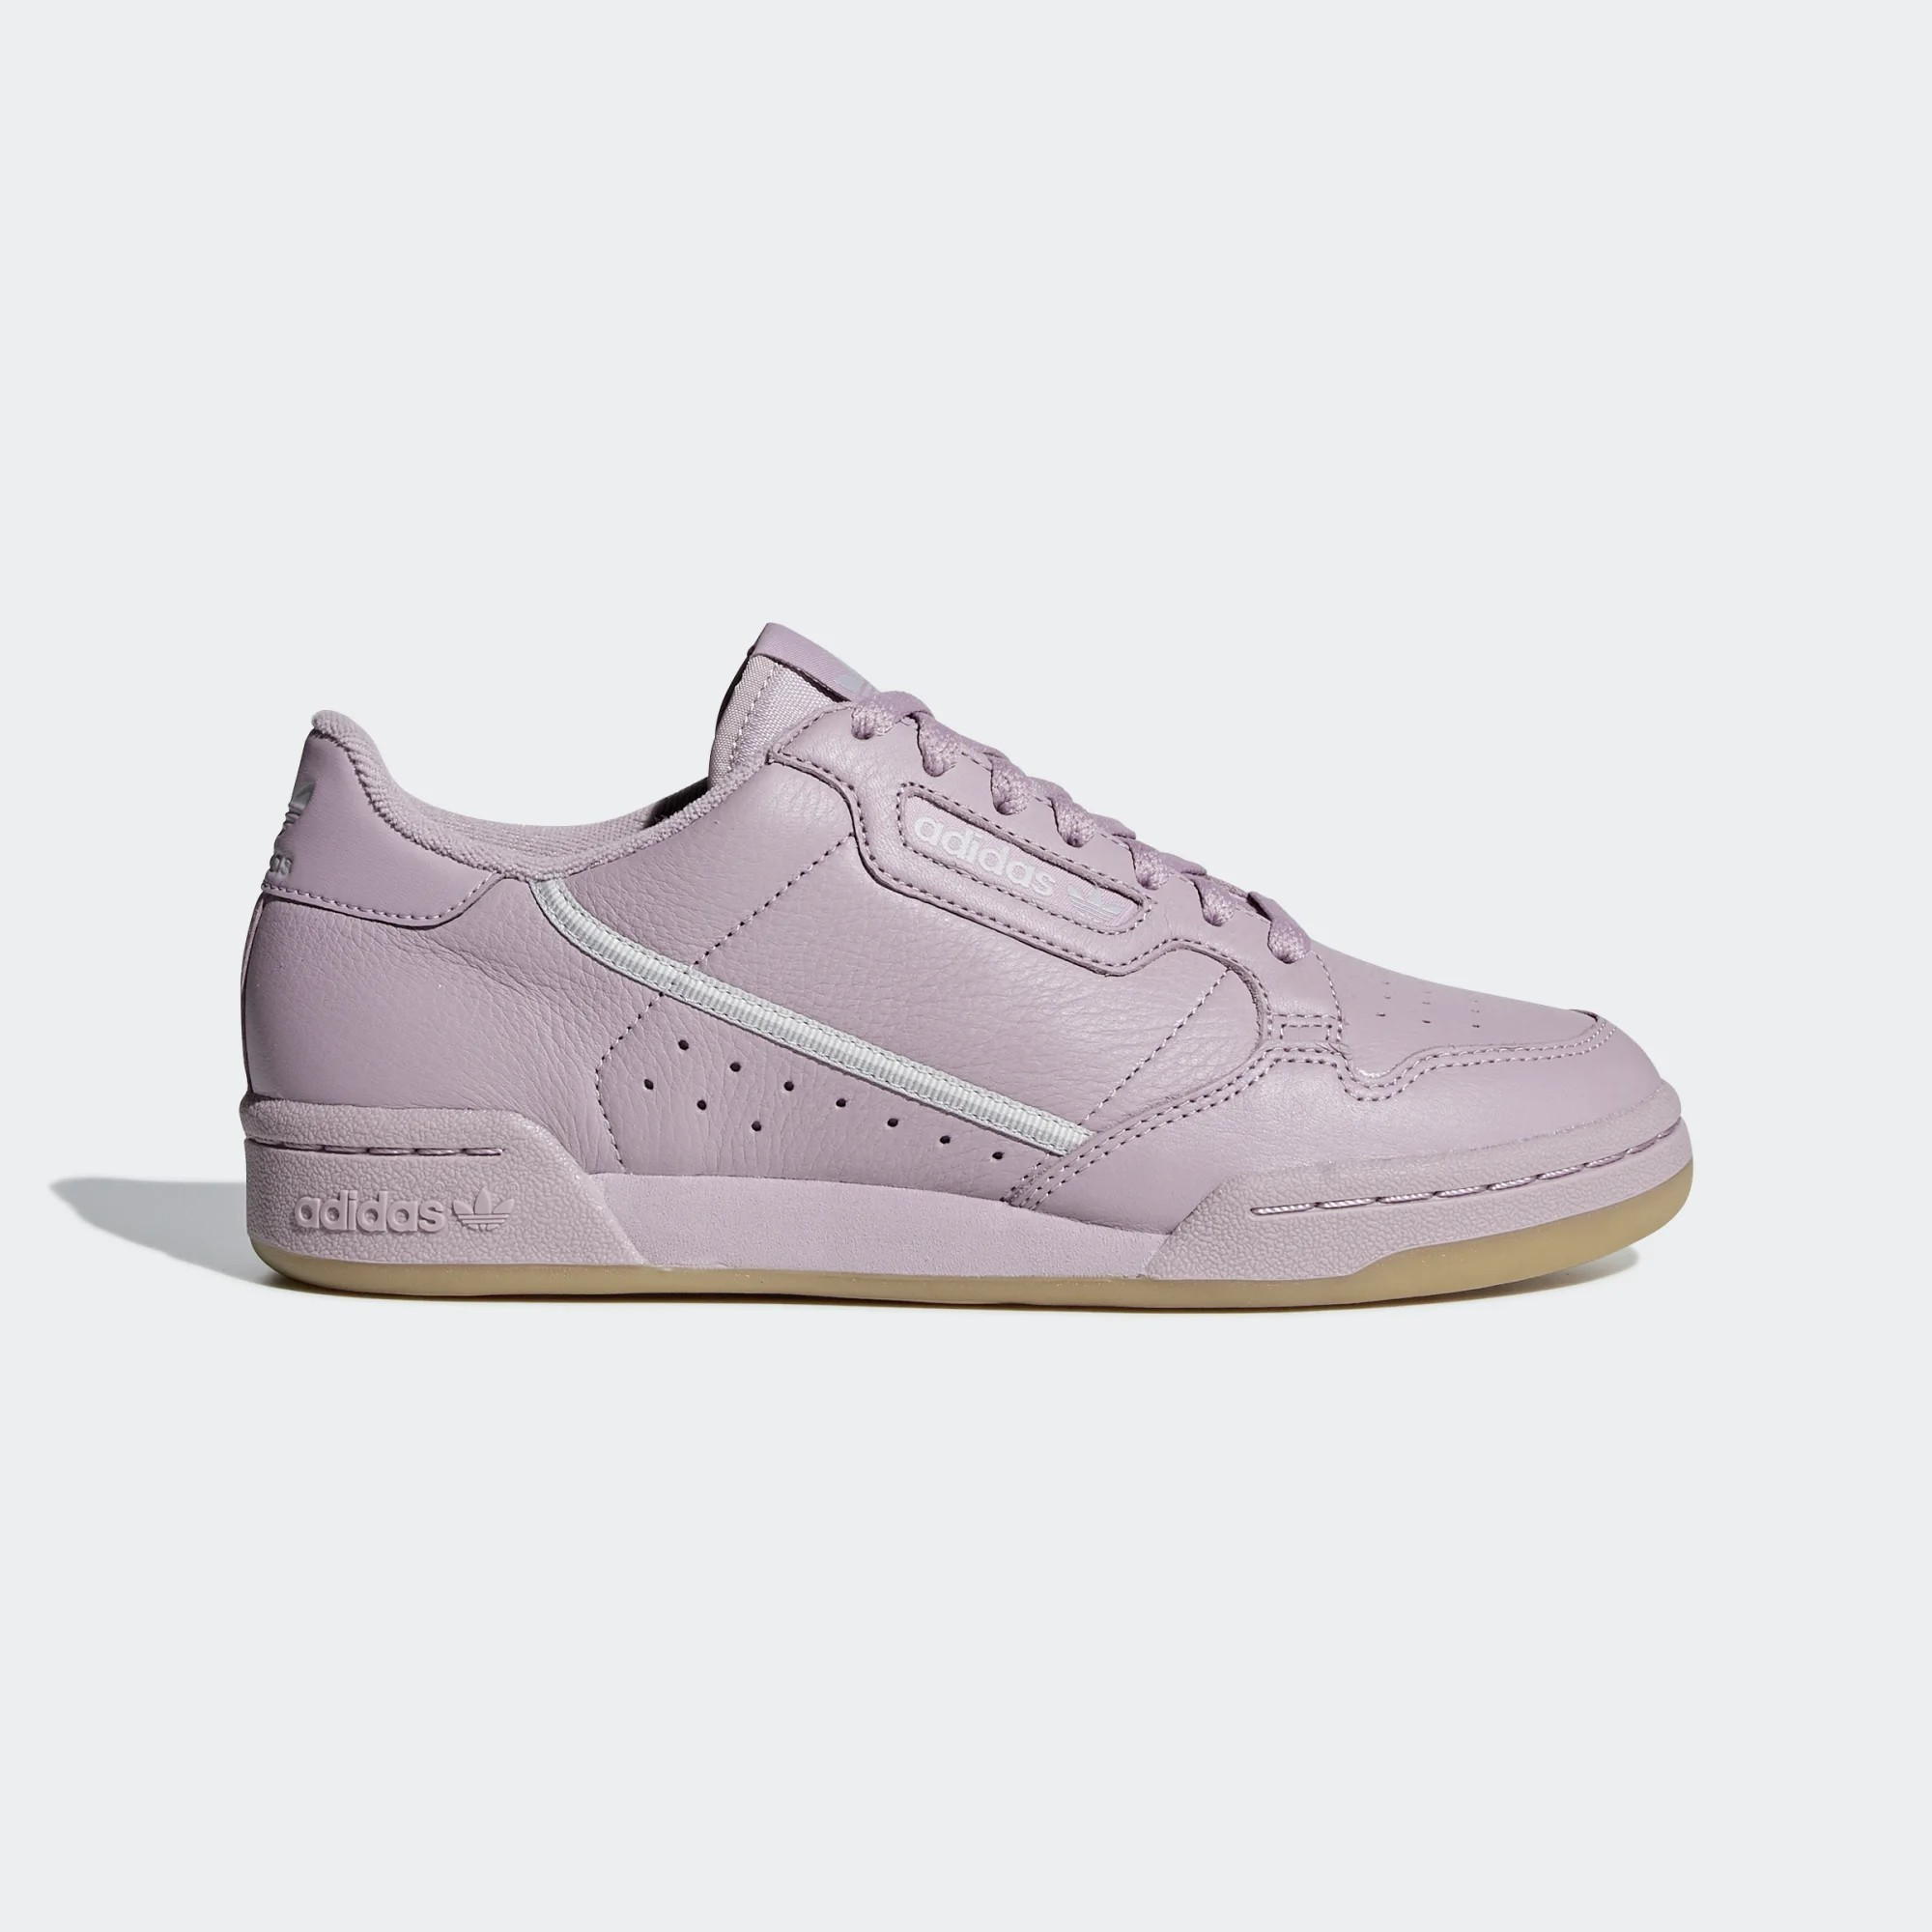 Adidas Femme Continental 80 Chaussures Soft Vision/Gris G27719